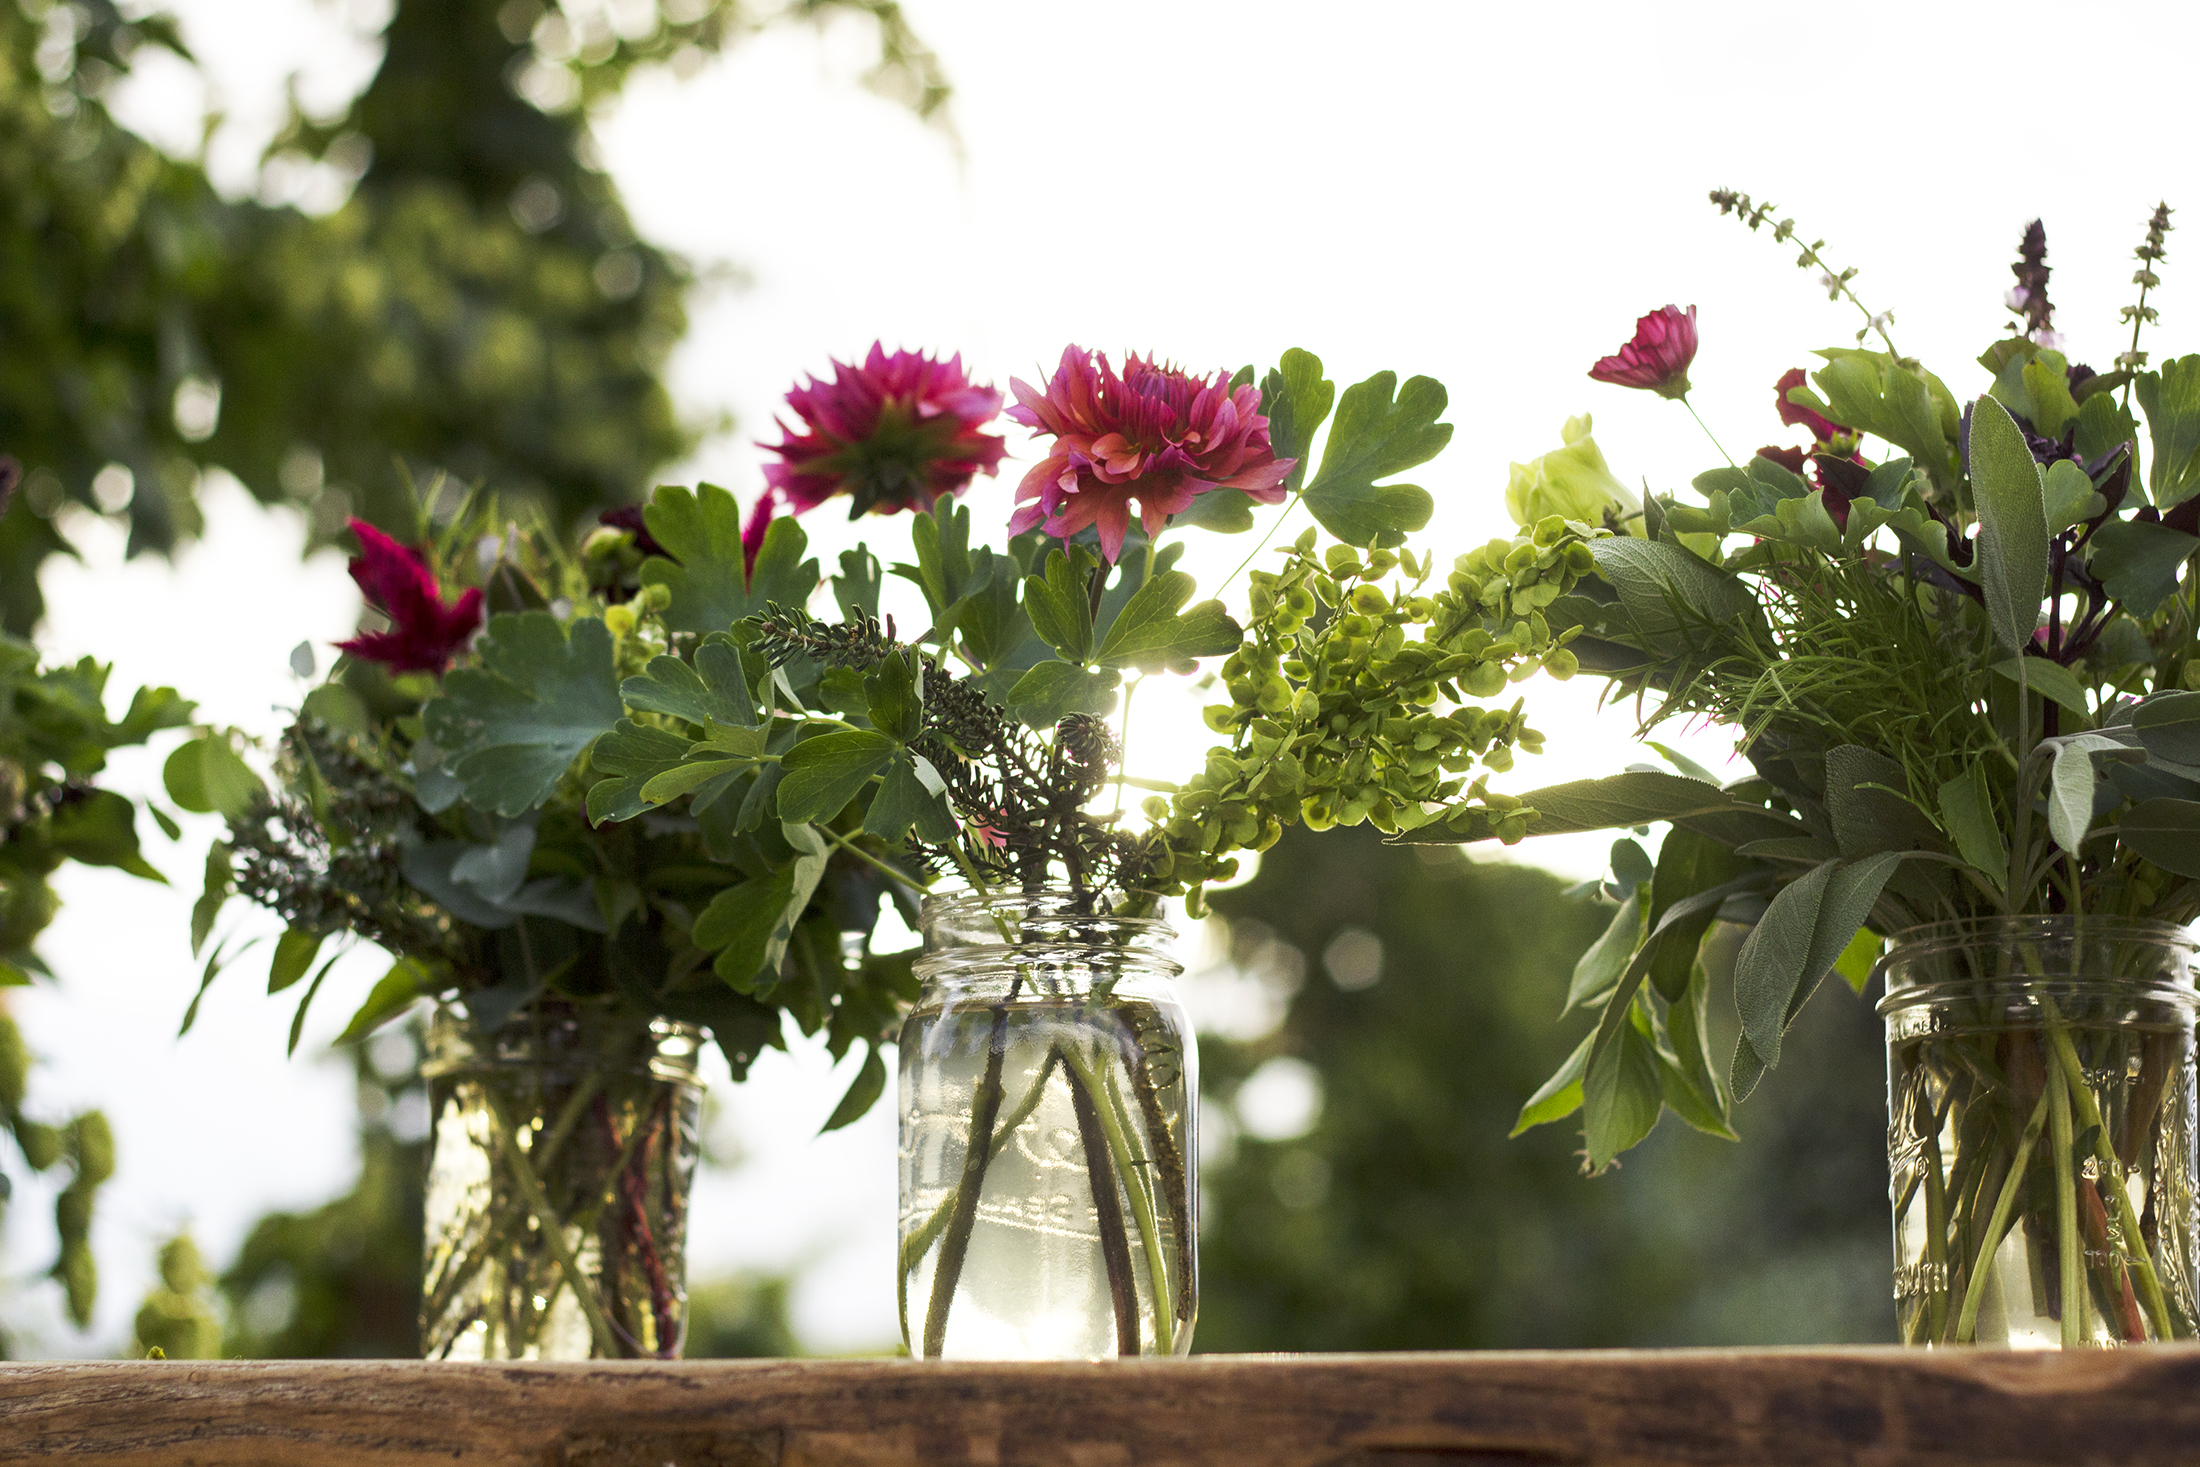 reduced_ss_flowers_jars_garden_sunset_creating_atriplex_dahlia_.jpg